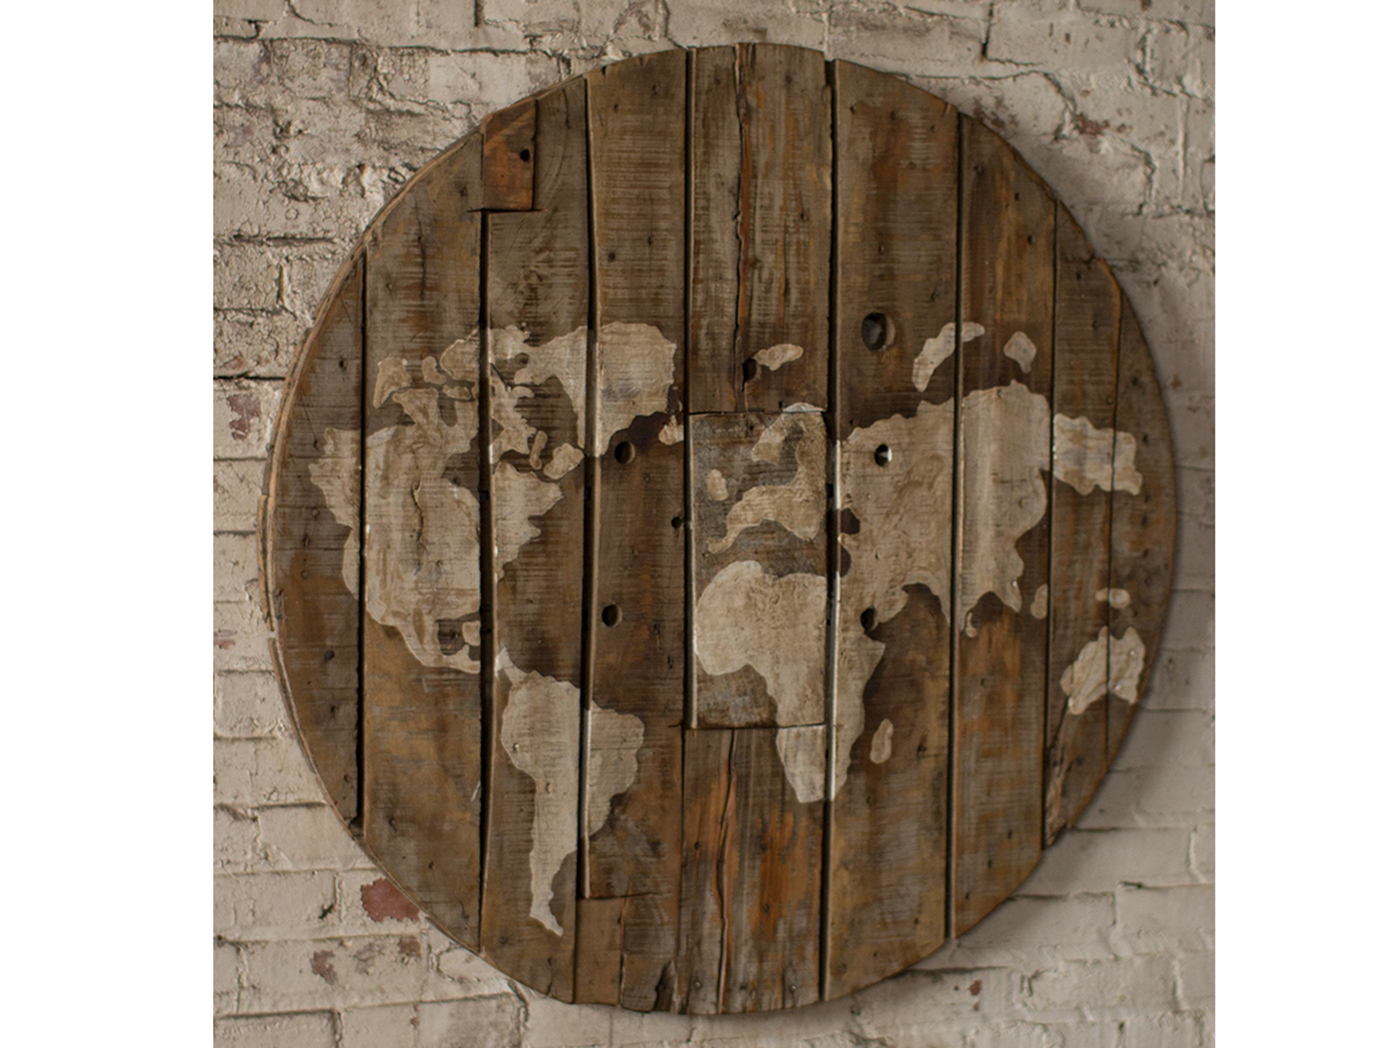 World Map Wall Decor 42""